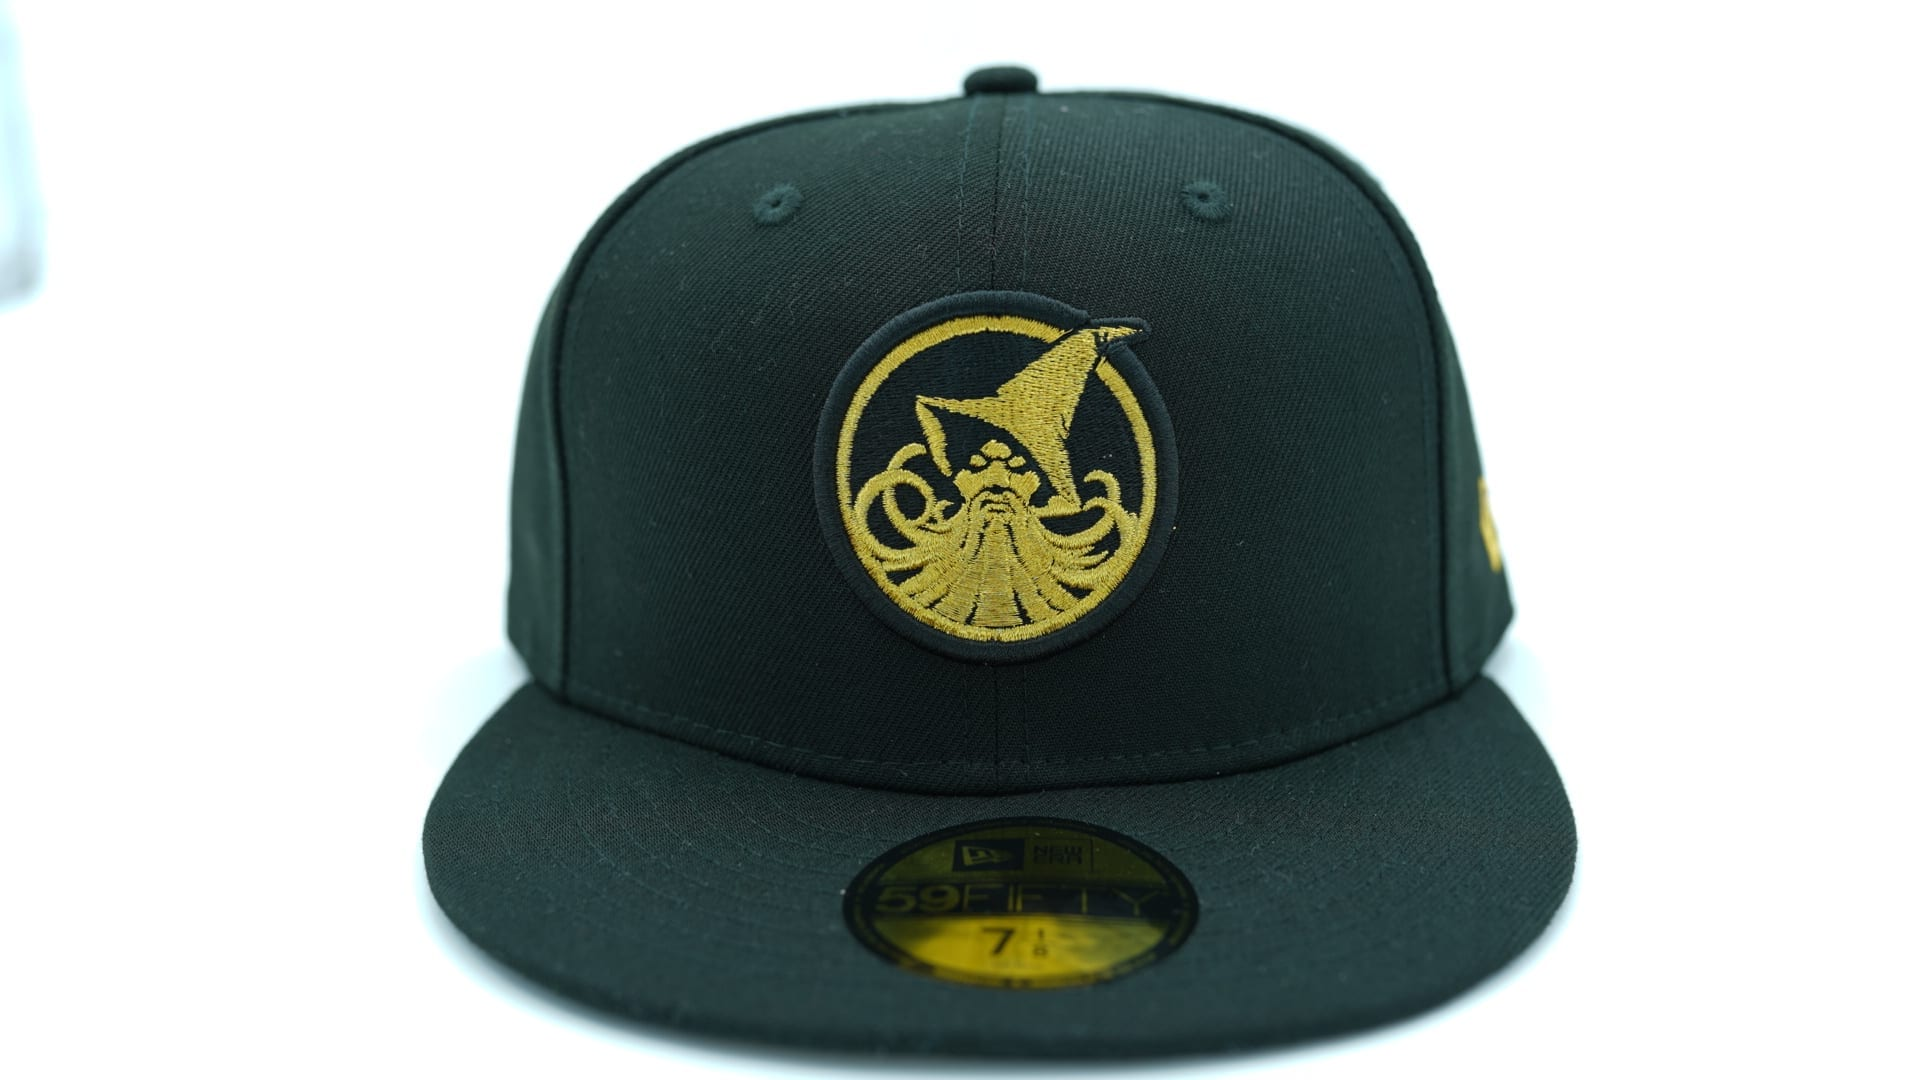 odb fitted baseball cap wu tang clan 7 union